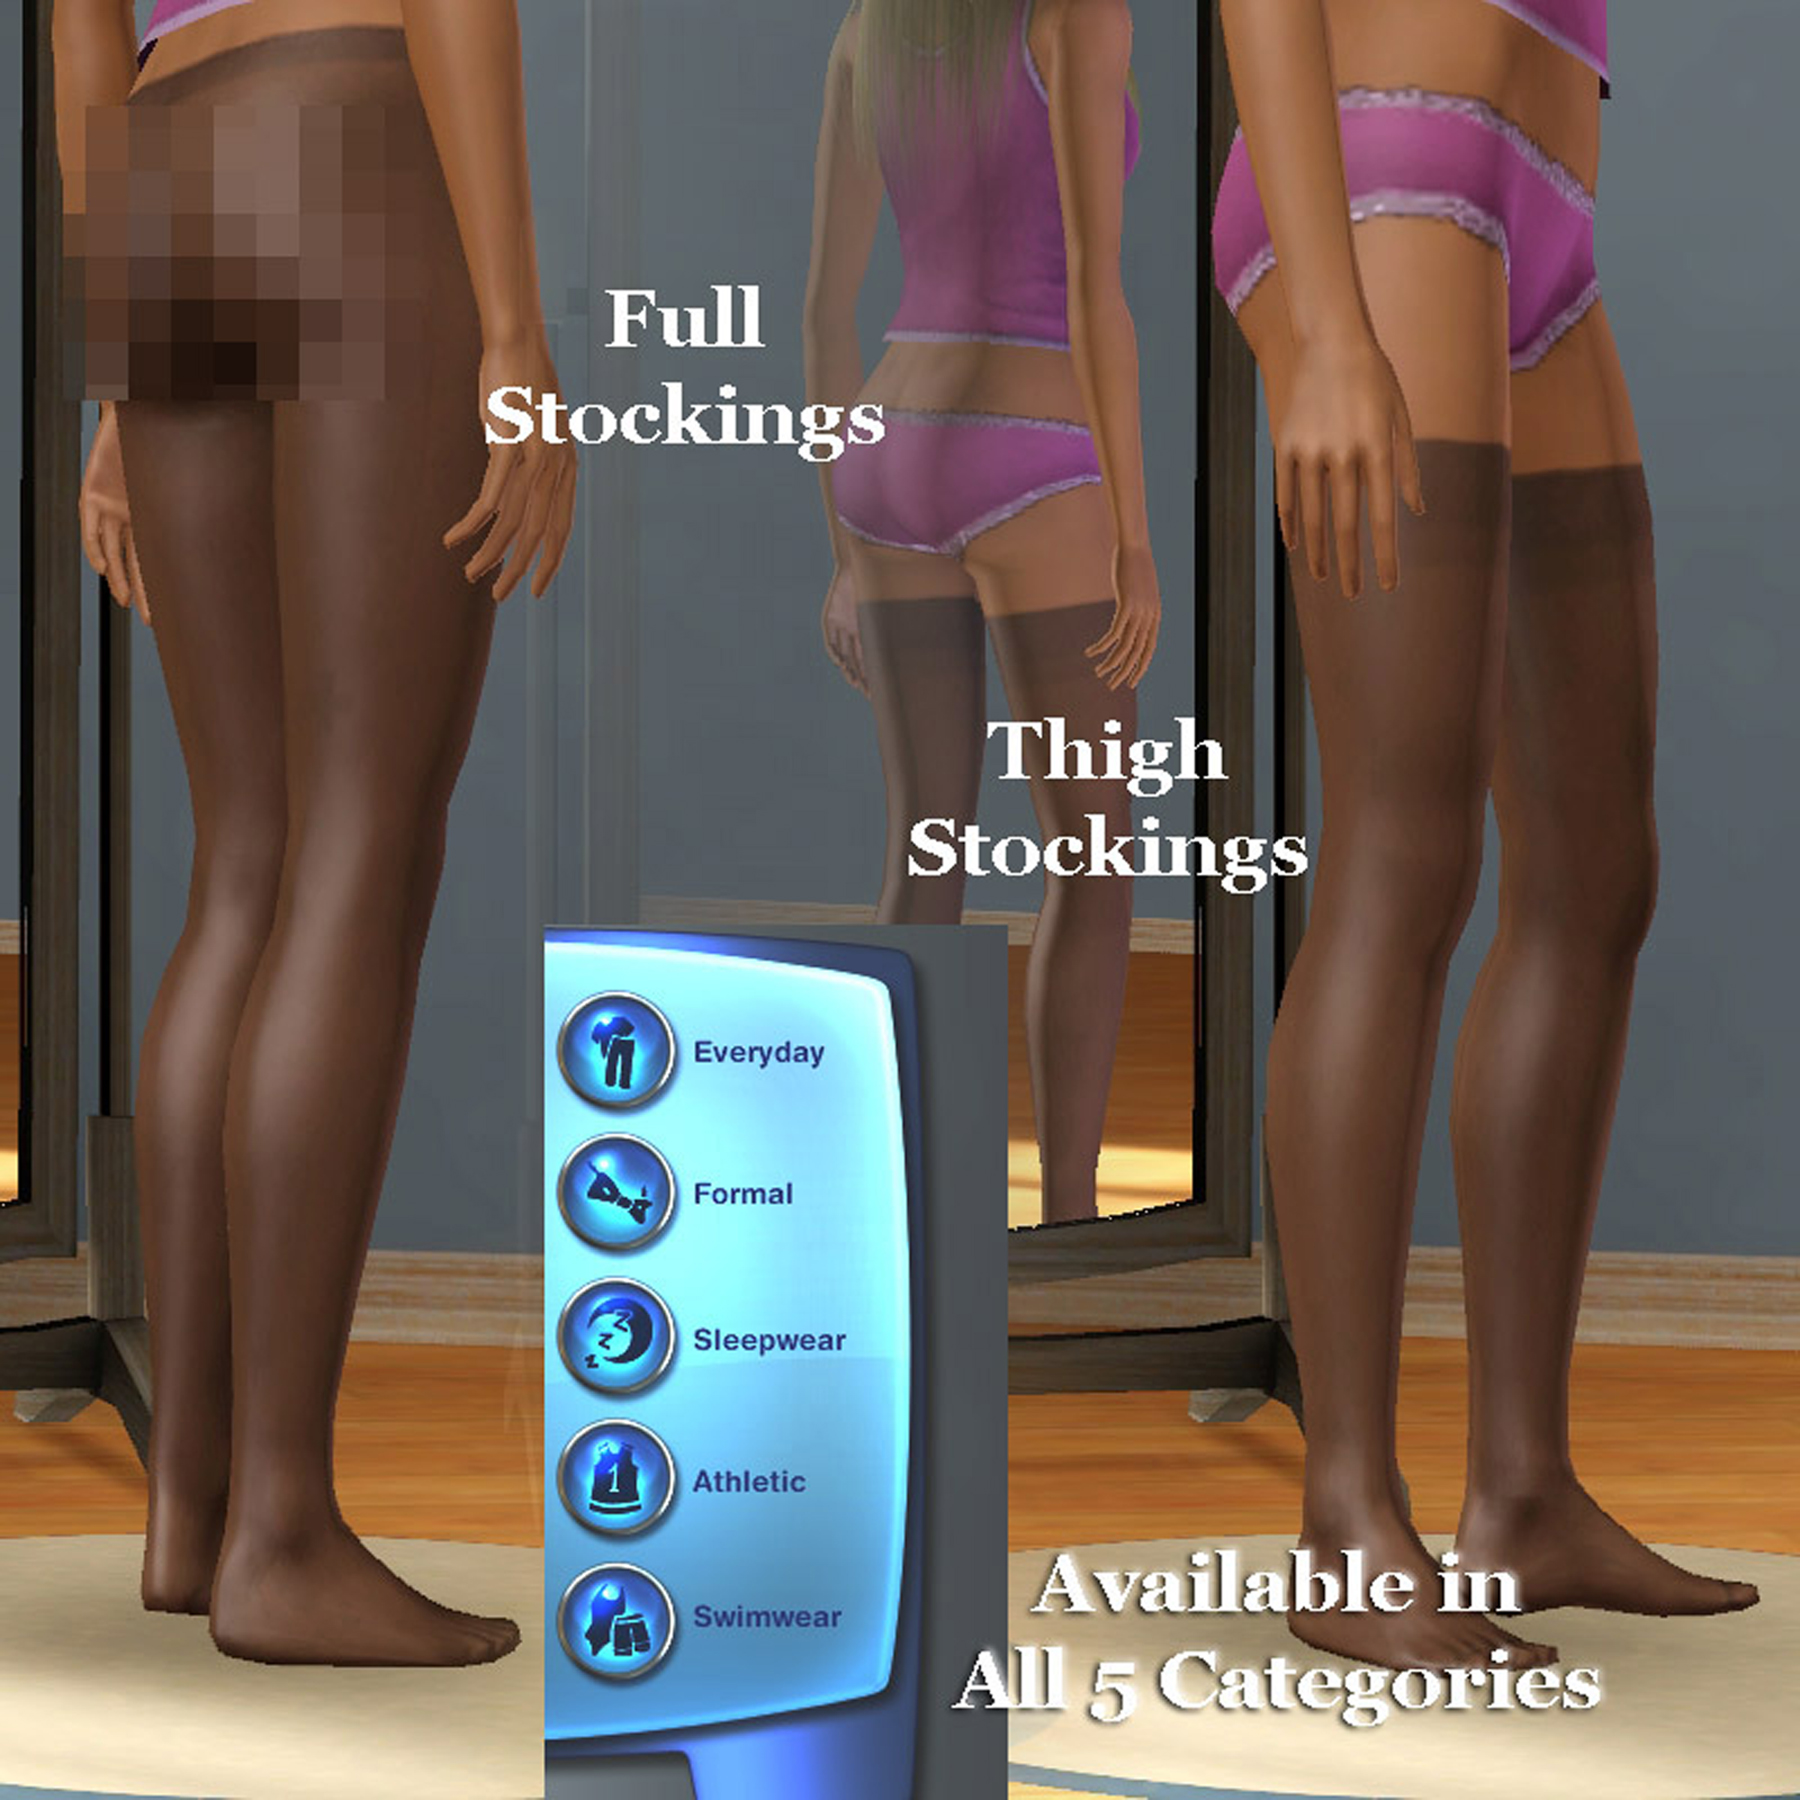 The sims deluxe edition nude mod nude photos